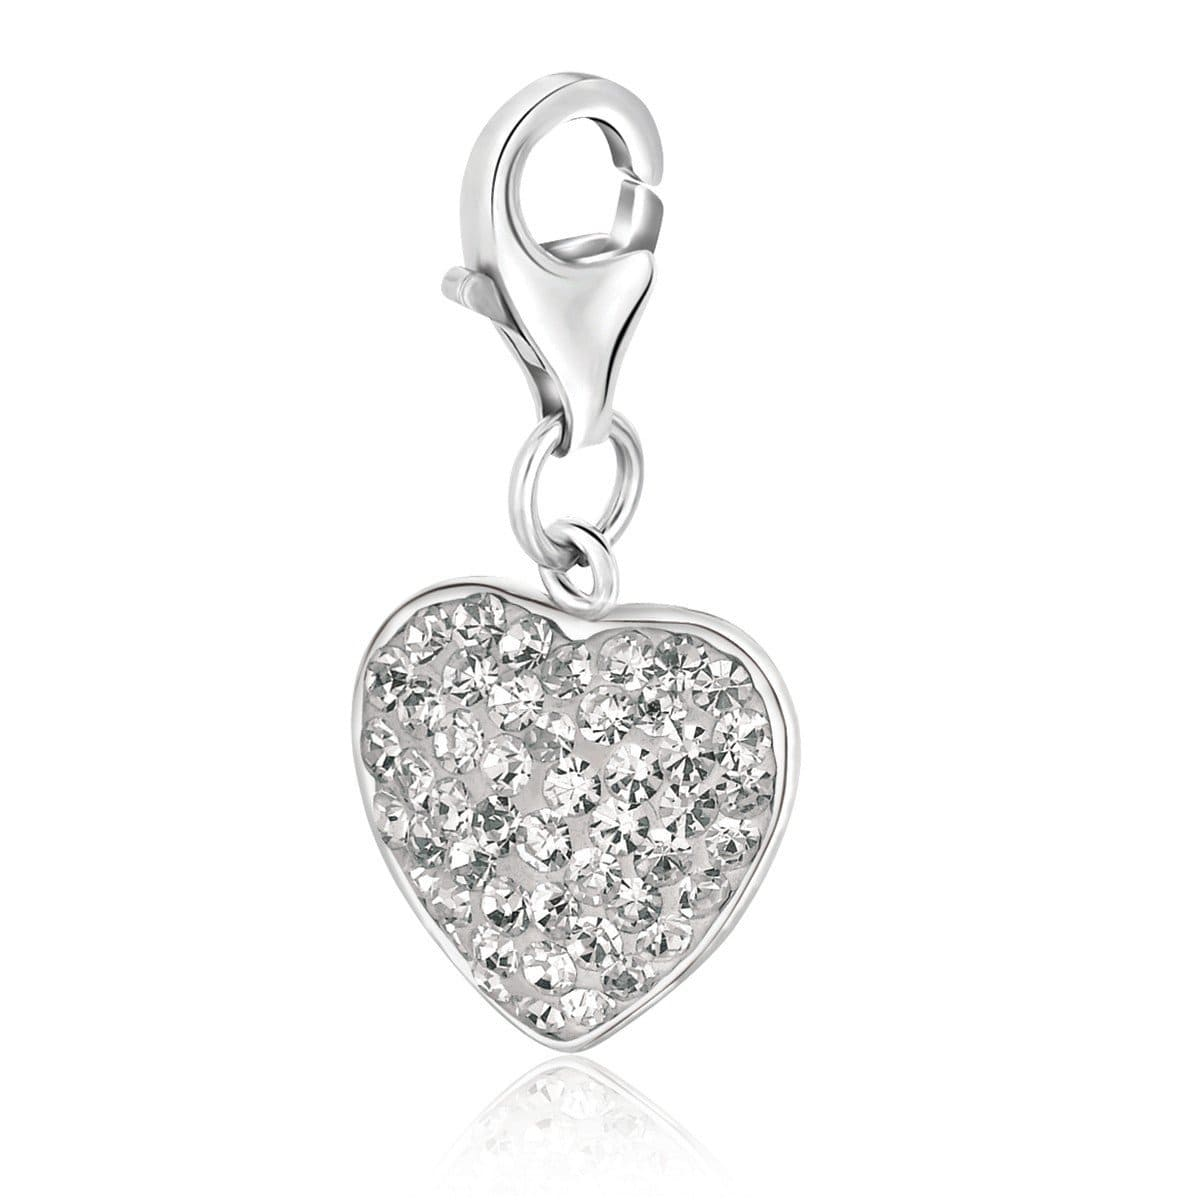 Sterling Silver Heart Charm with White Tone Crystal Accents